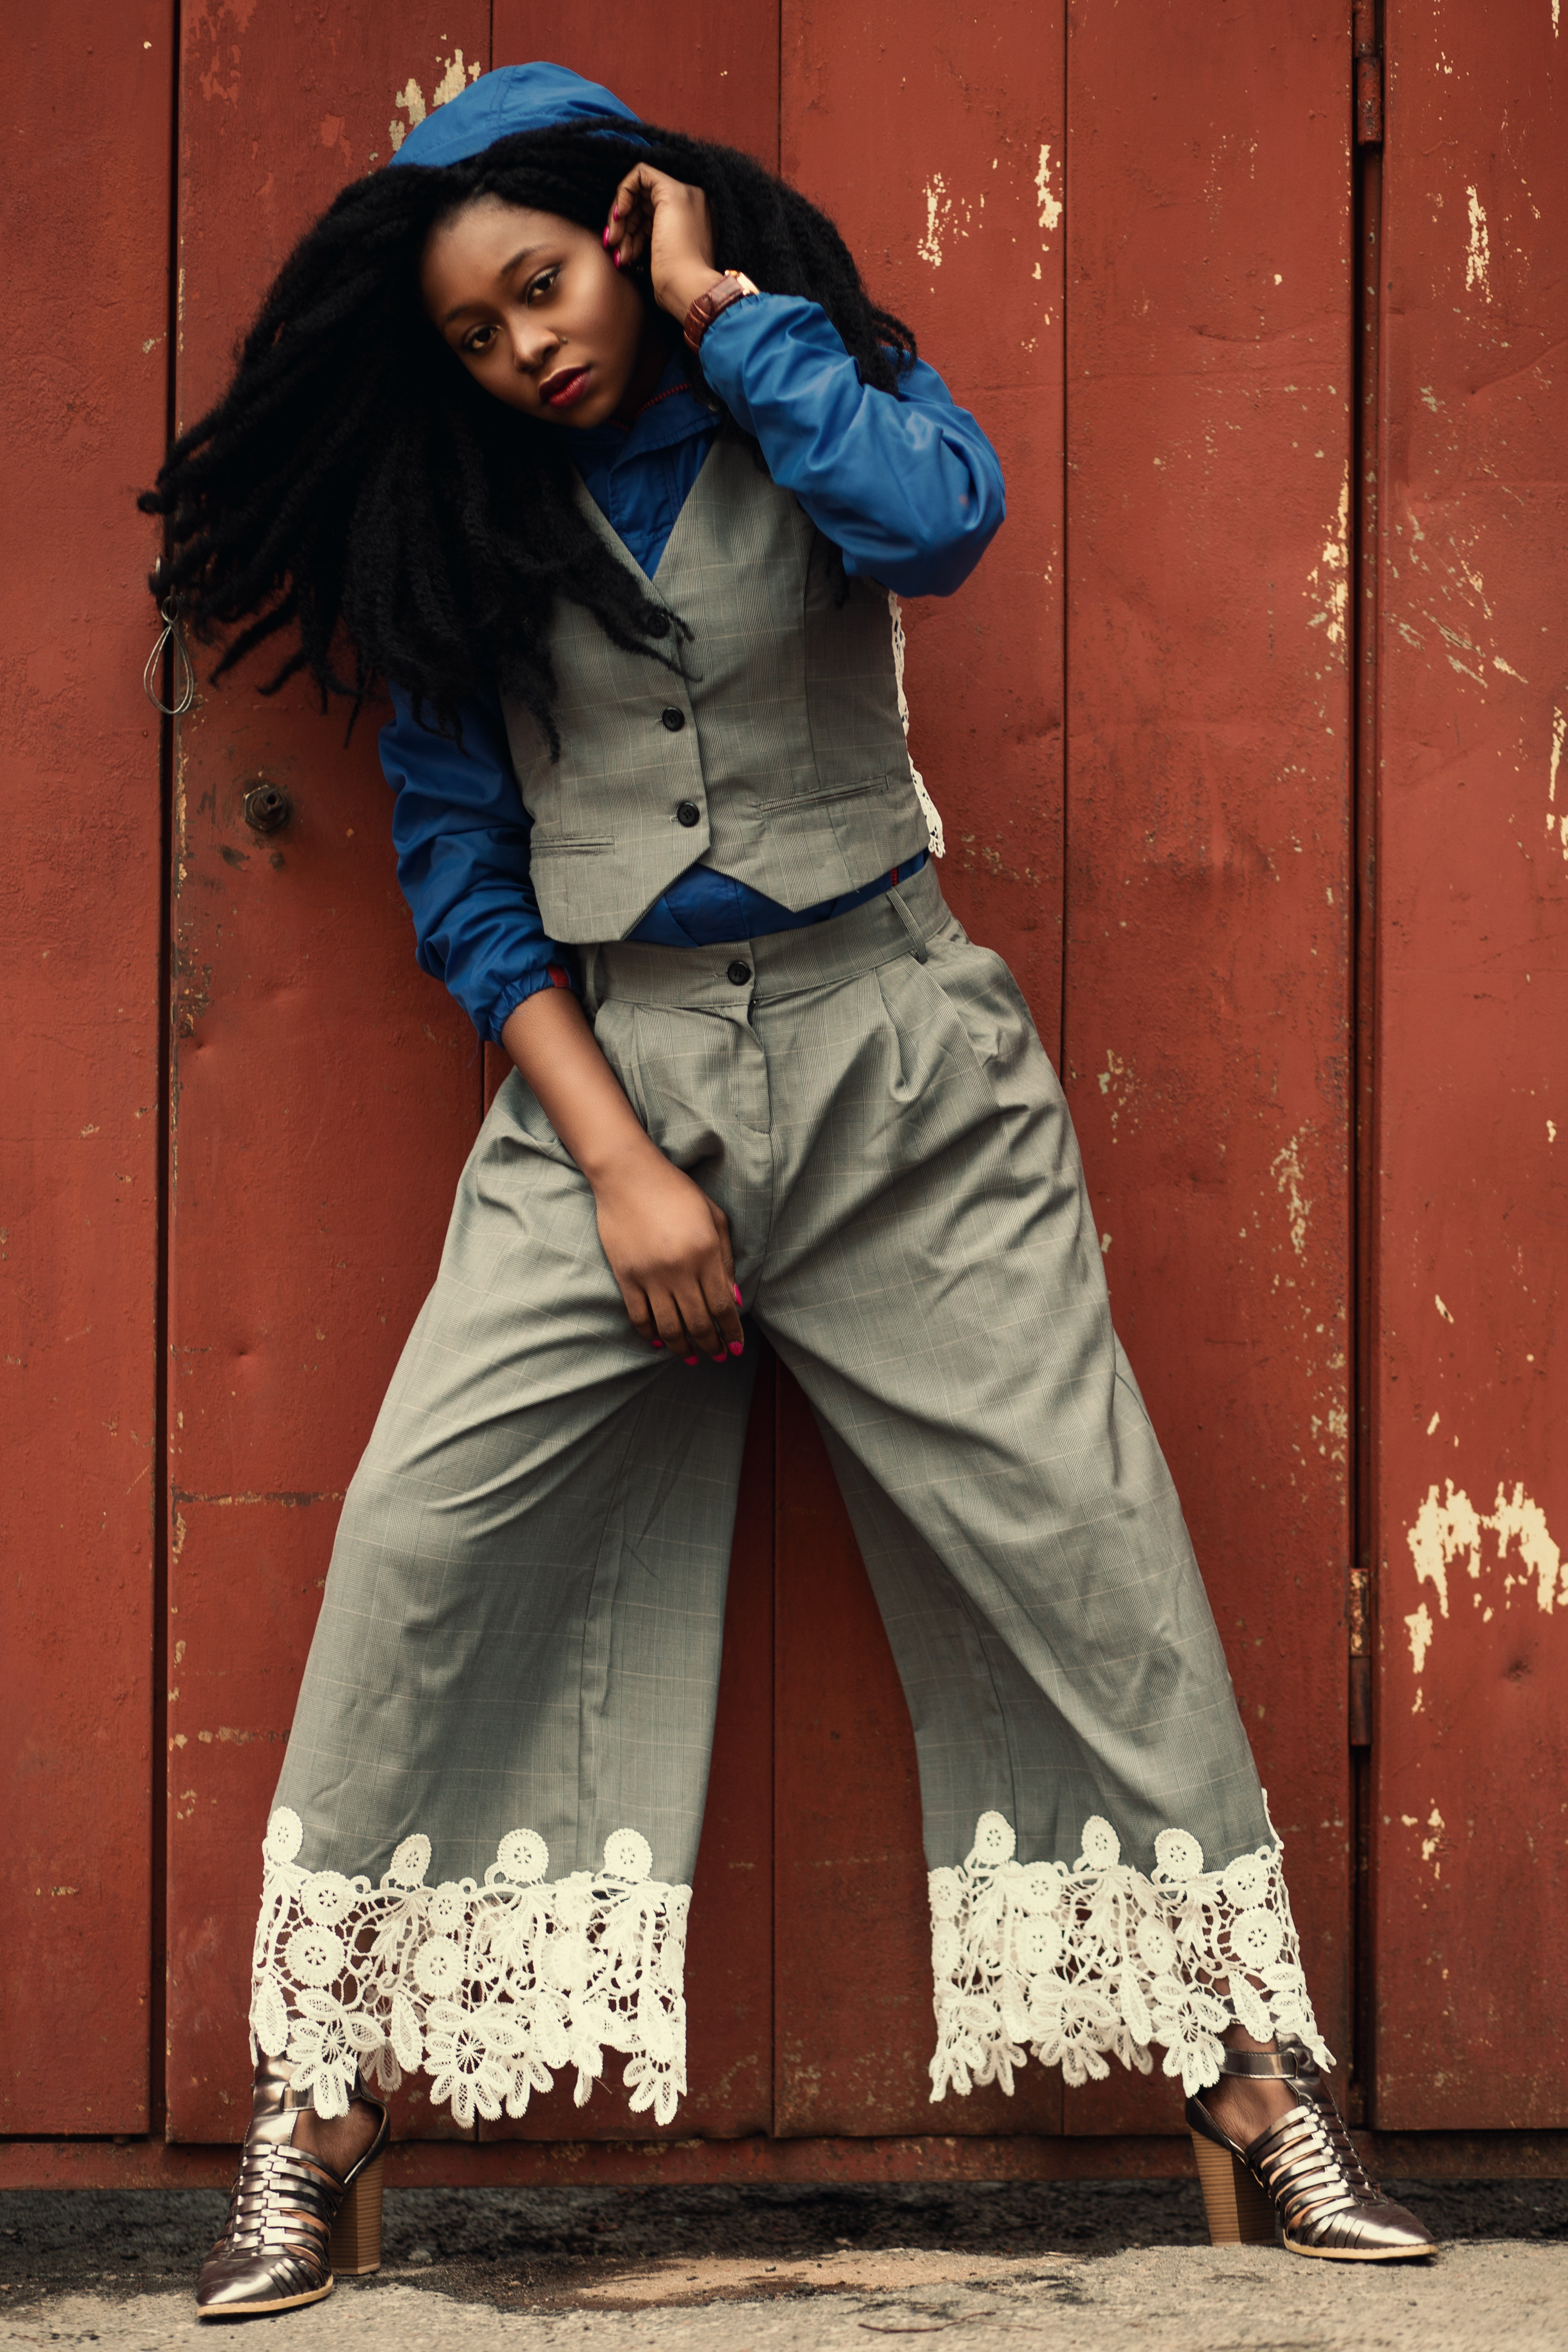 Woman Wearing Gray Waist Vest and Gray Flare Pants, Beautiful, Outdoor, Woman, Wear, HQ Photo